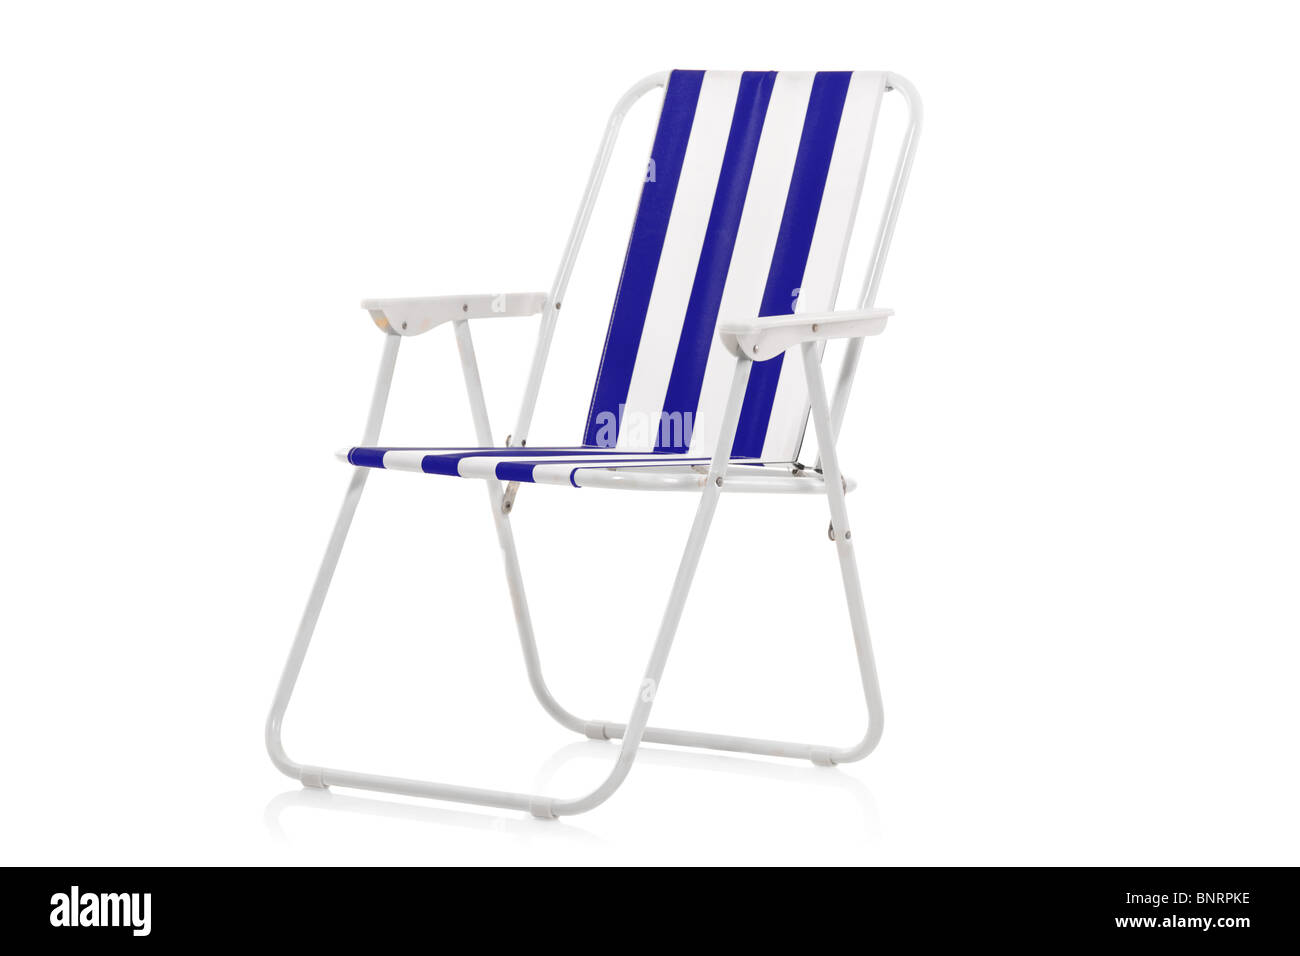 Blue and white striped beach chair - Stock Image